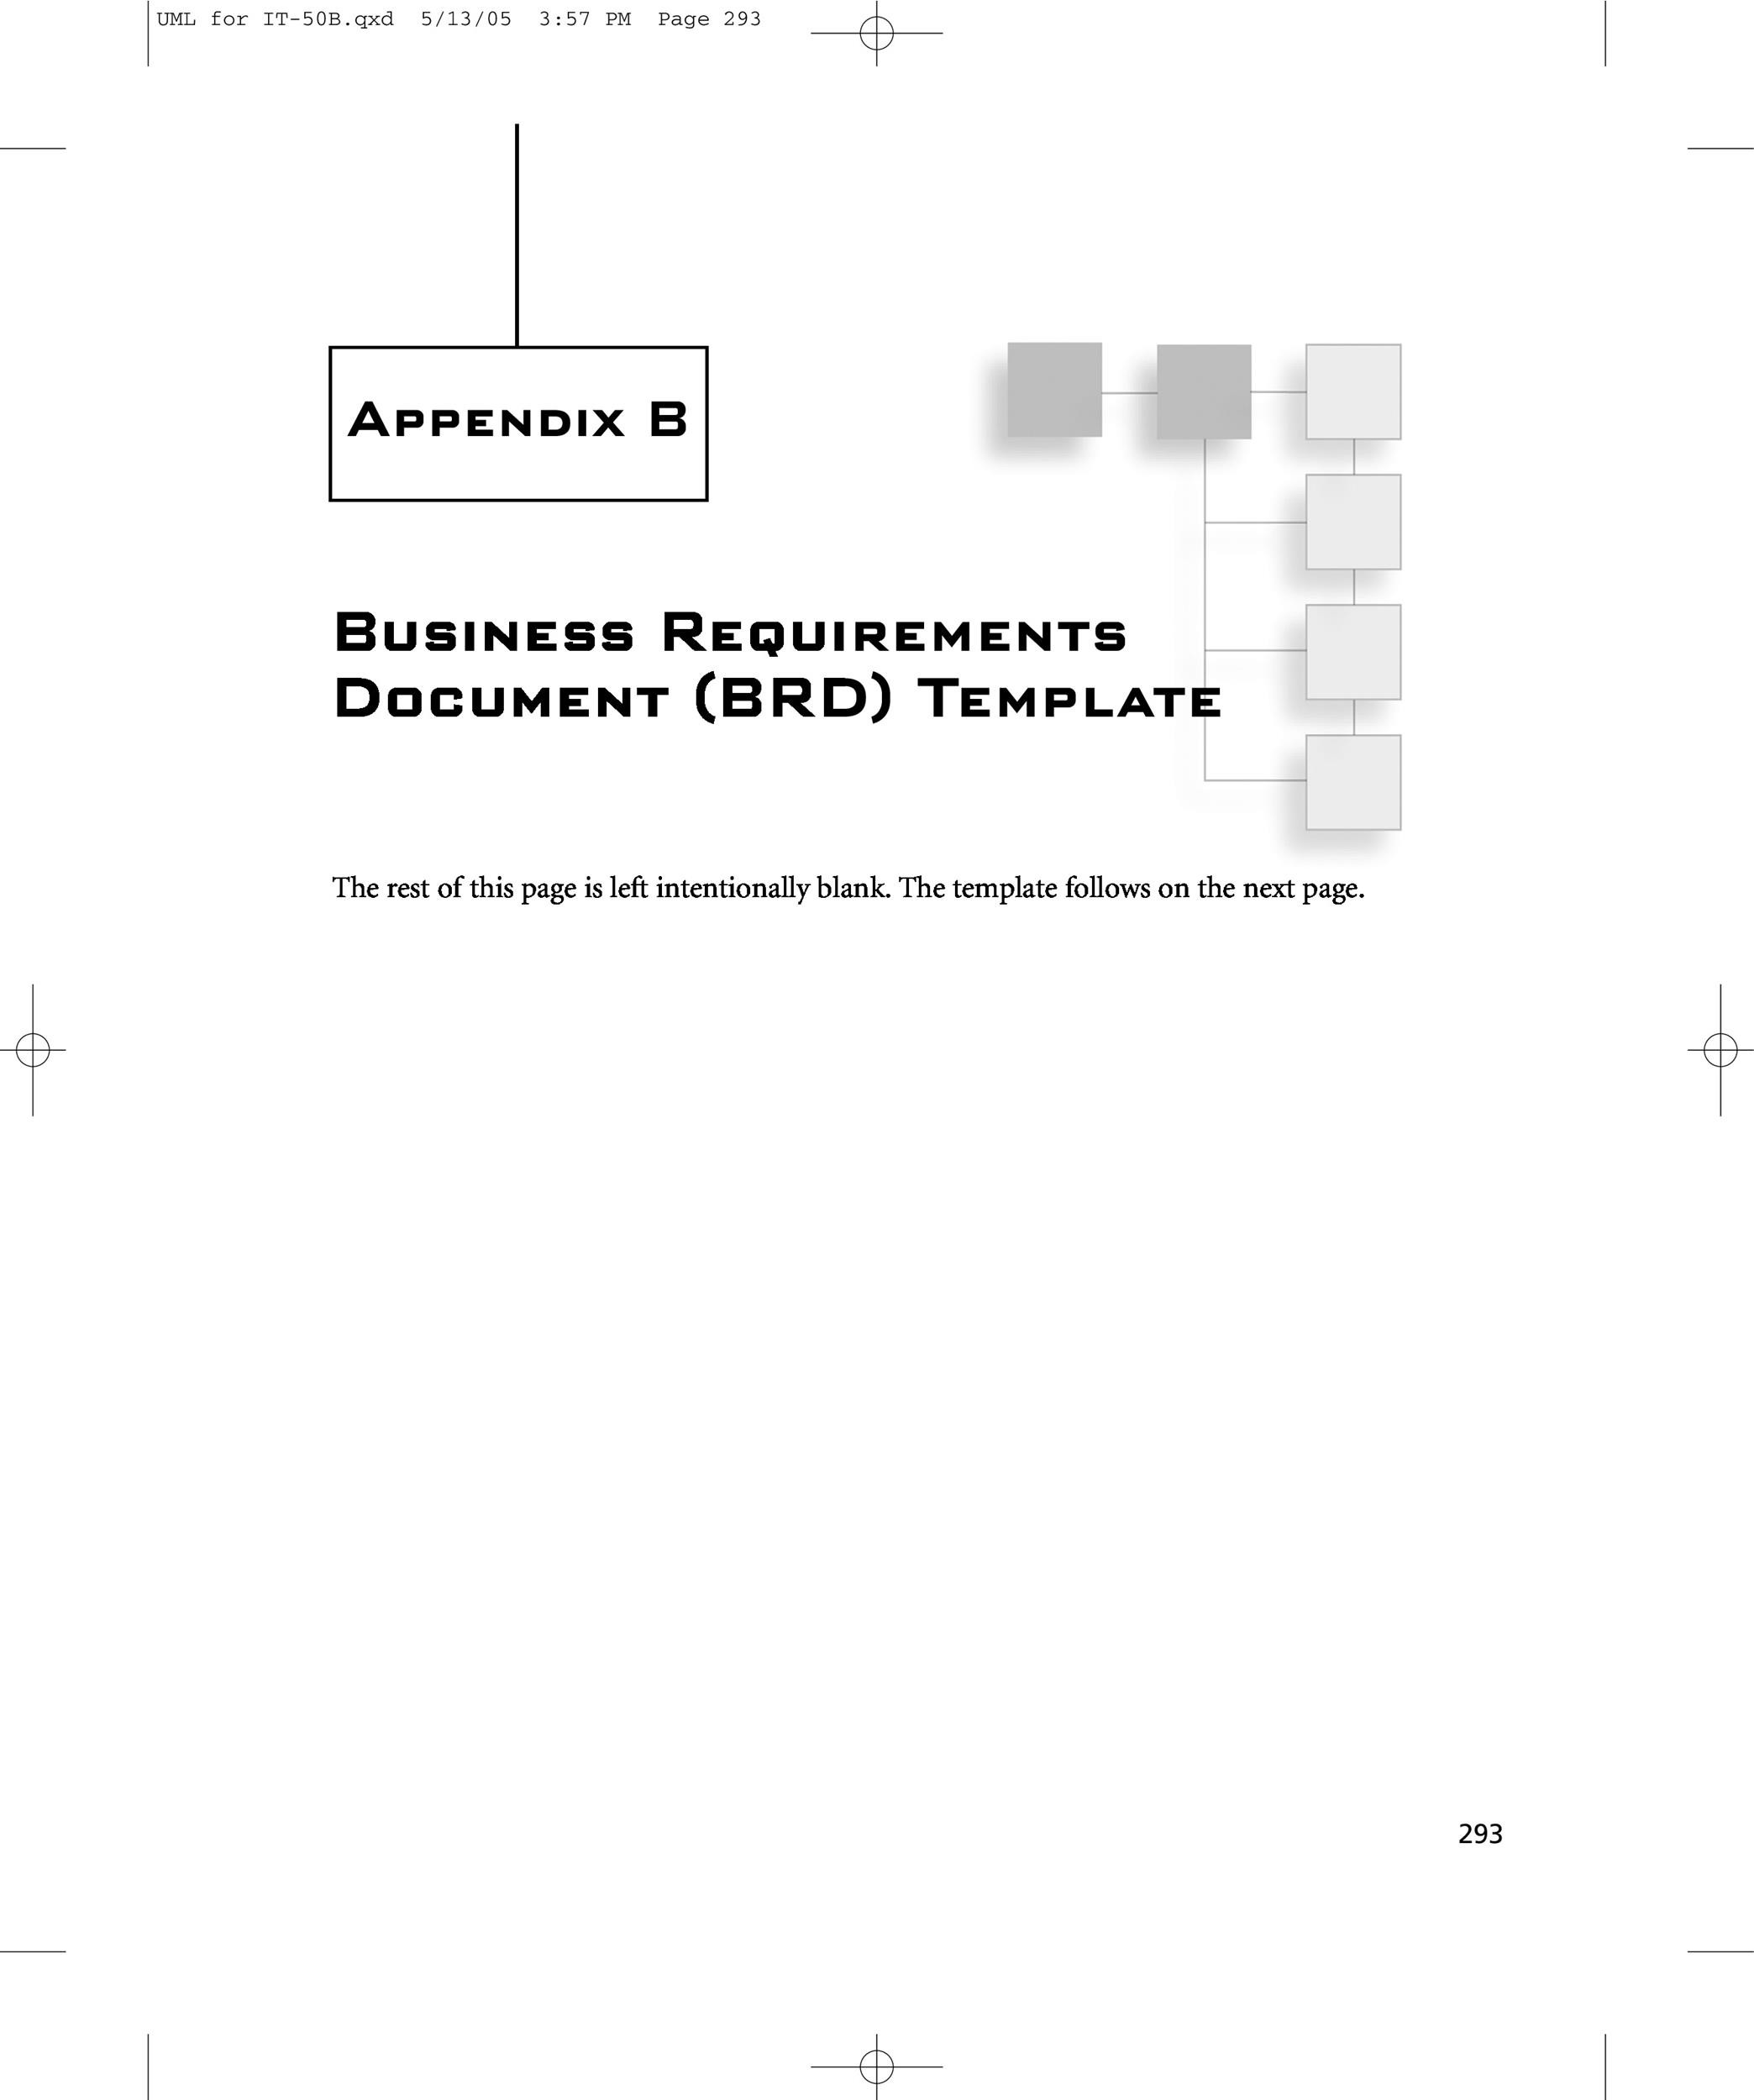 40 simple business requirements document templates template lab free business requirements document template 42 accmission Gallery